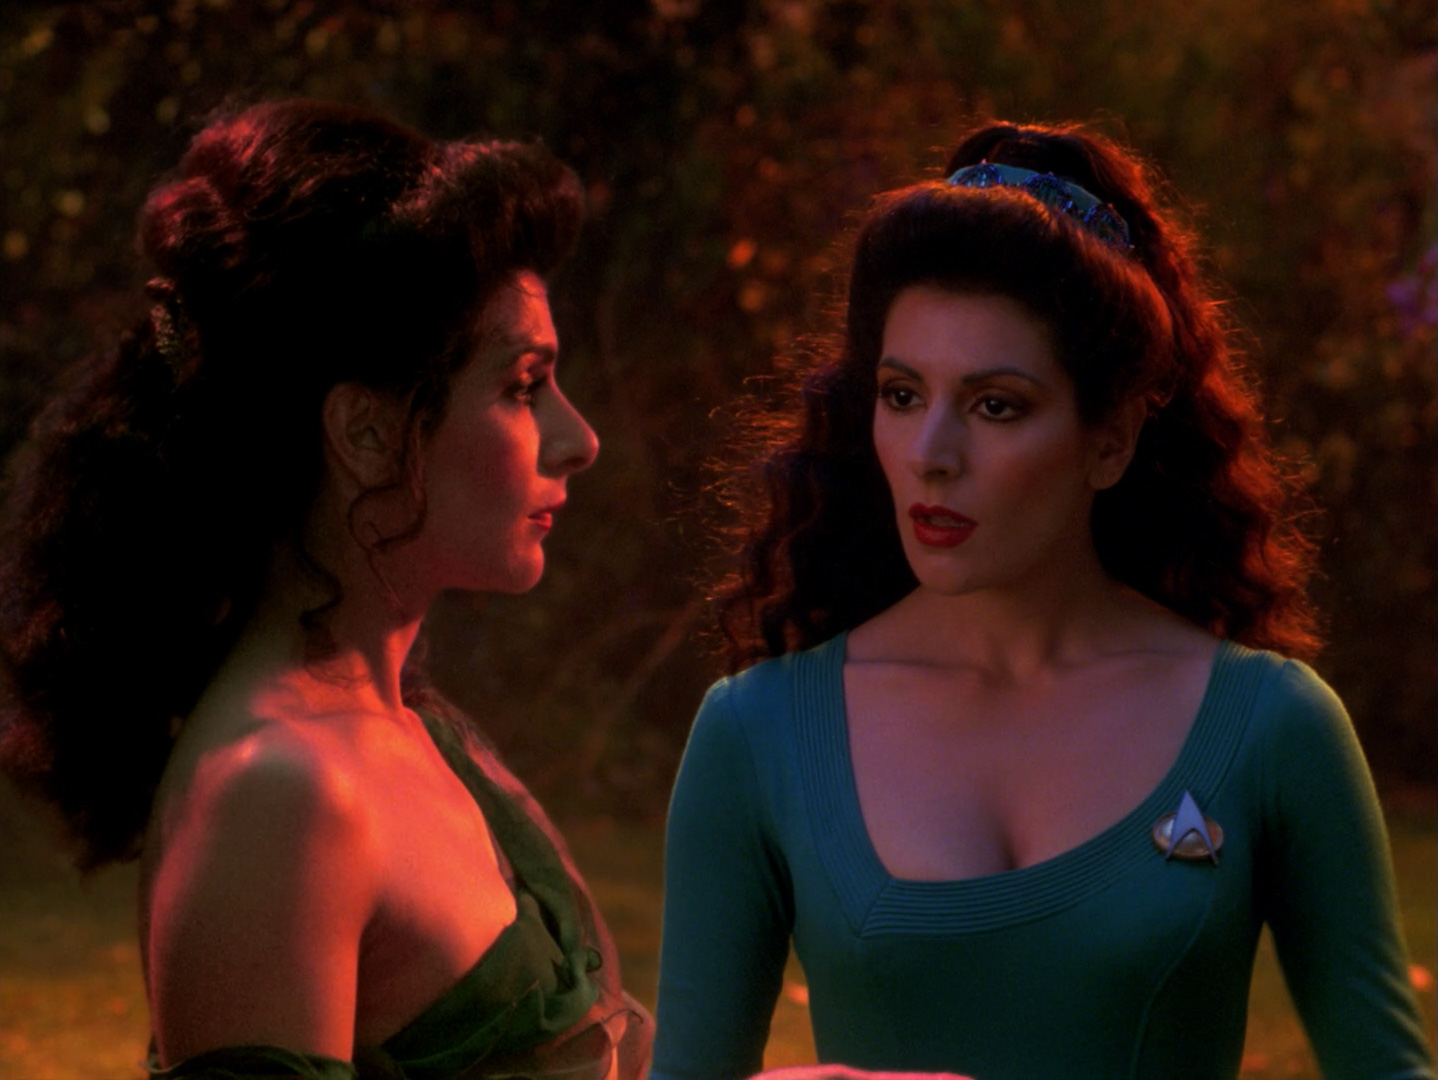 Deanna Troi - styling and shopping advice needed ...